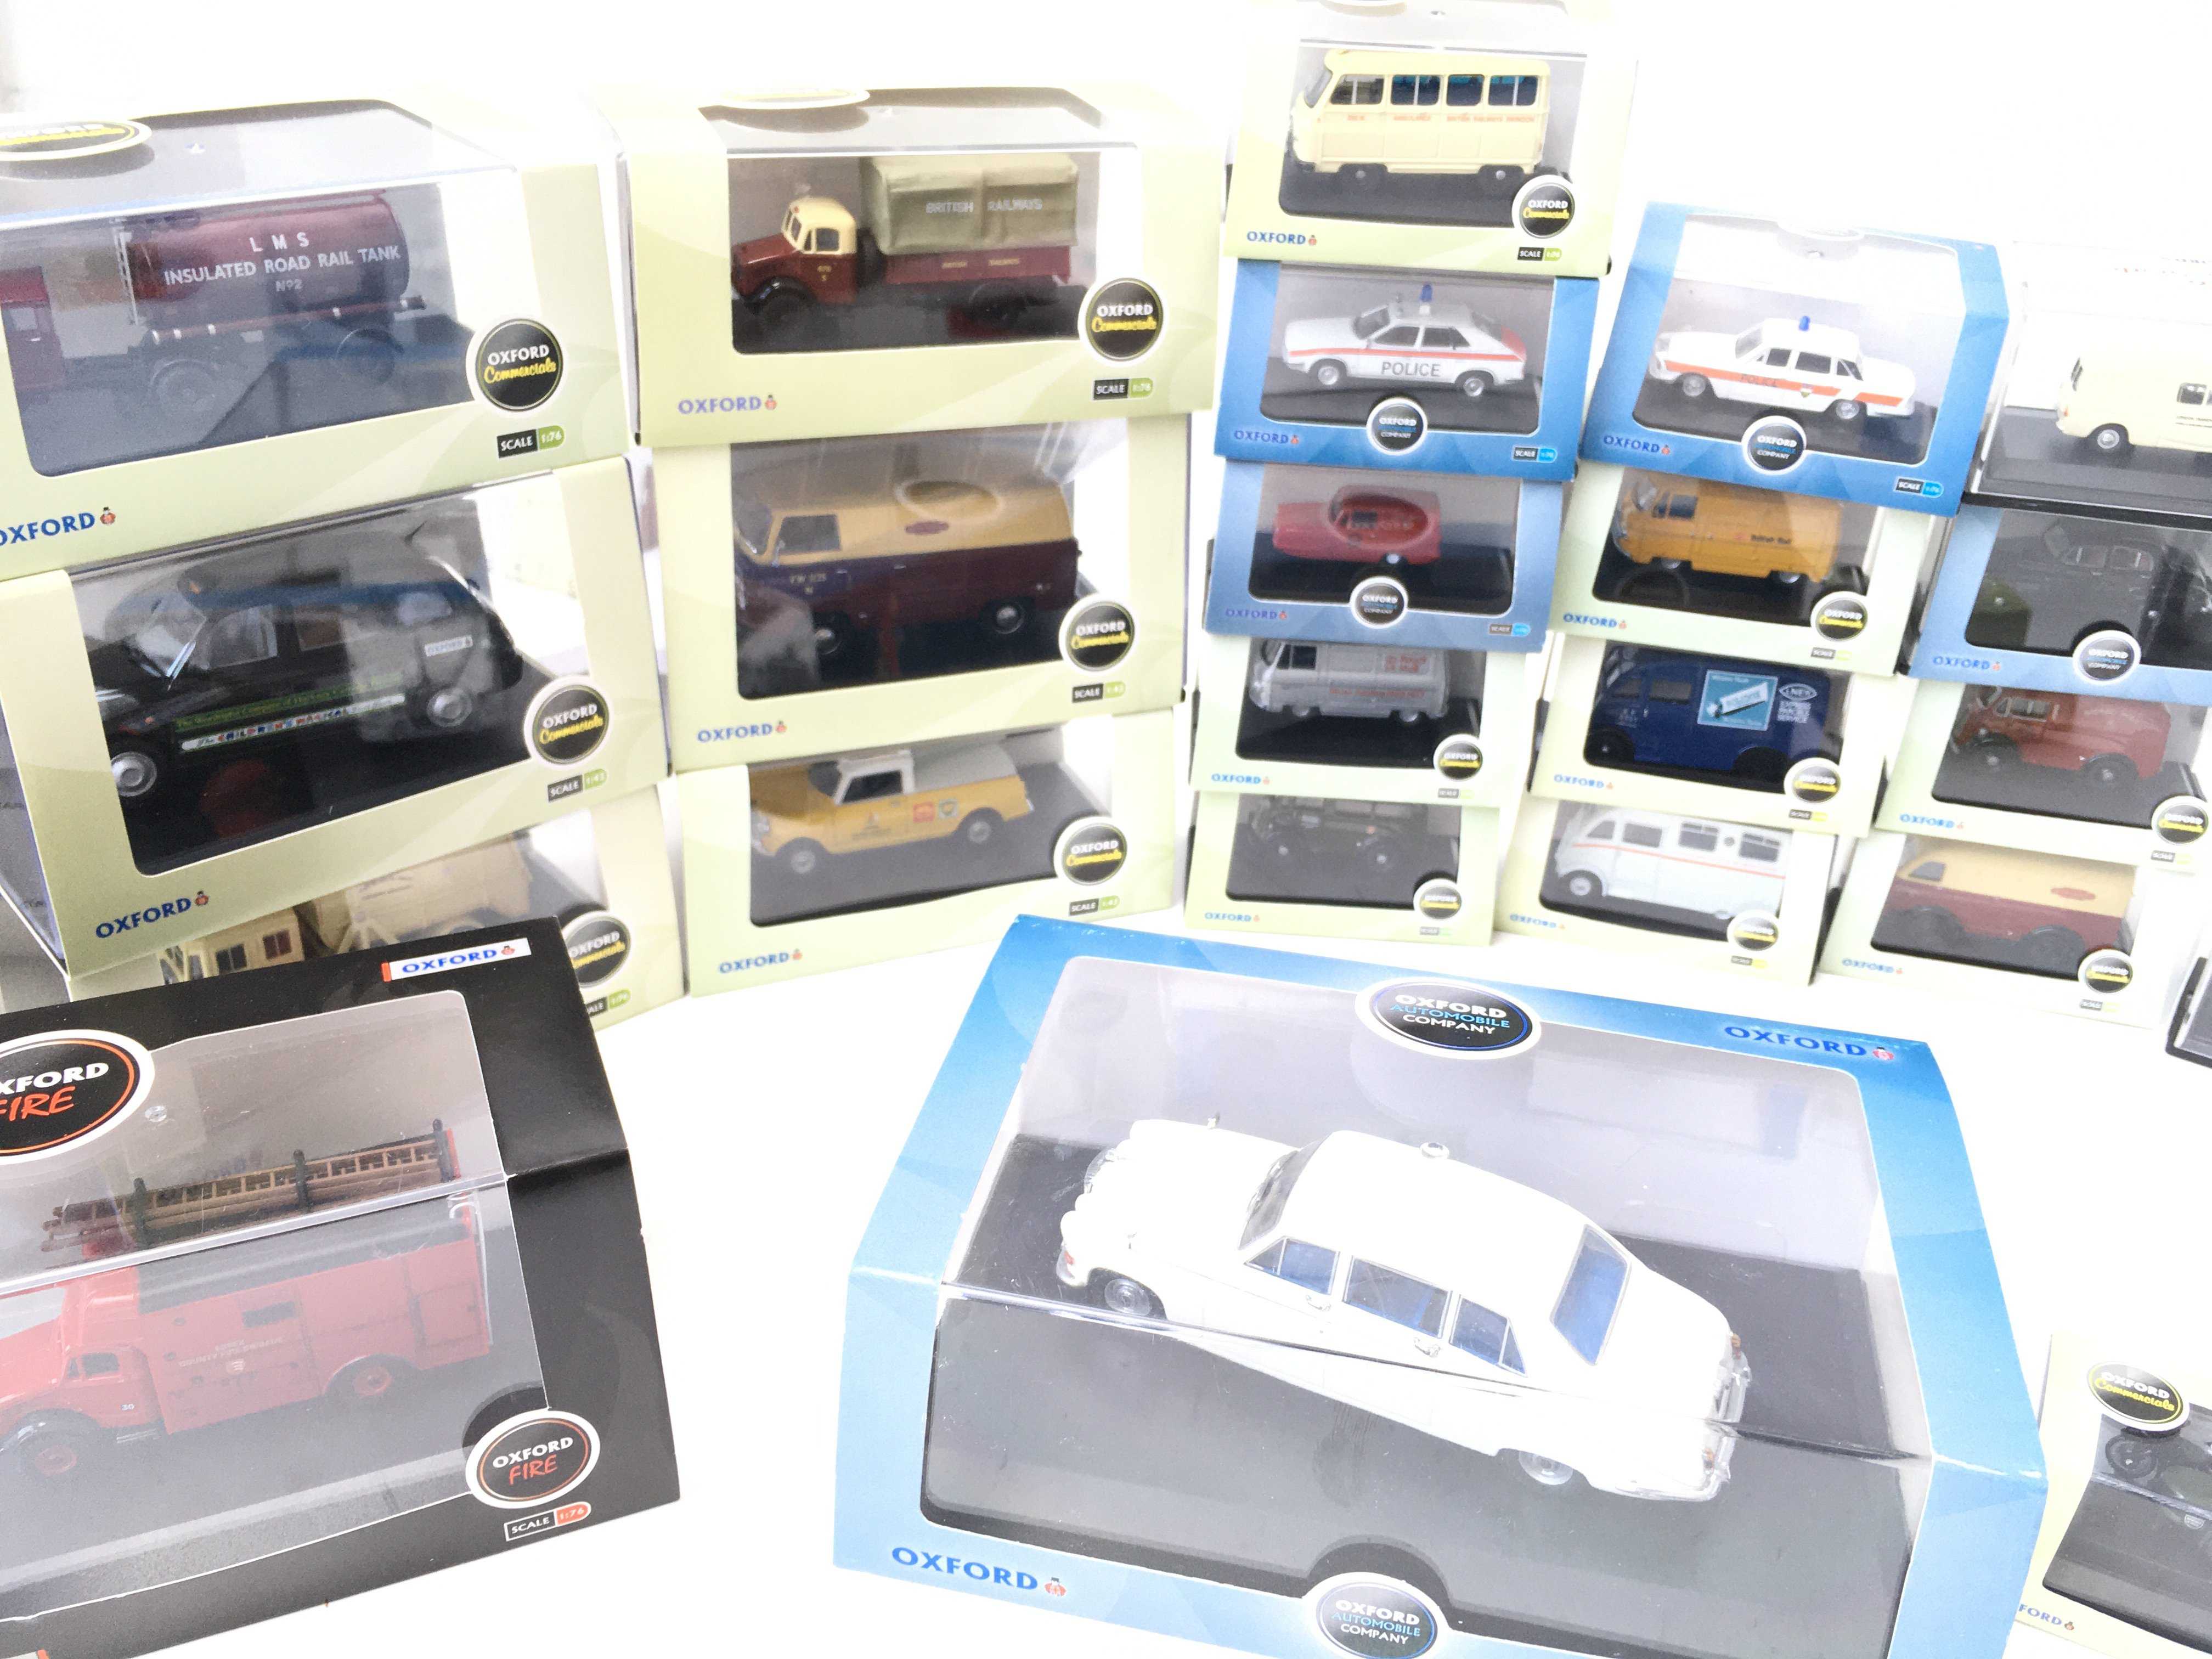 A Collection of Oxford Die-cast all boxed including Fire. haulage. automobile etc. - Image 2 of 4